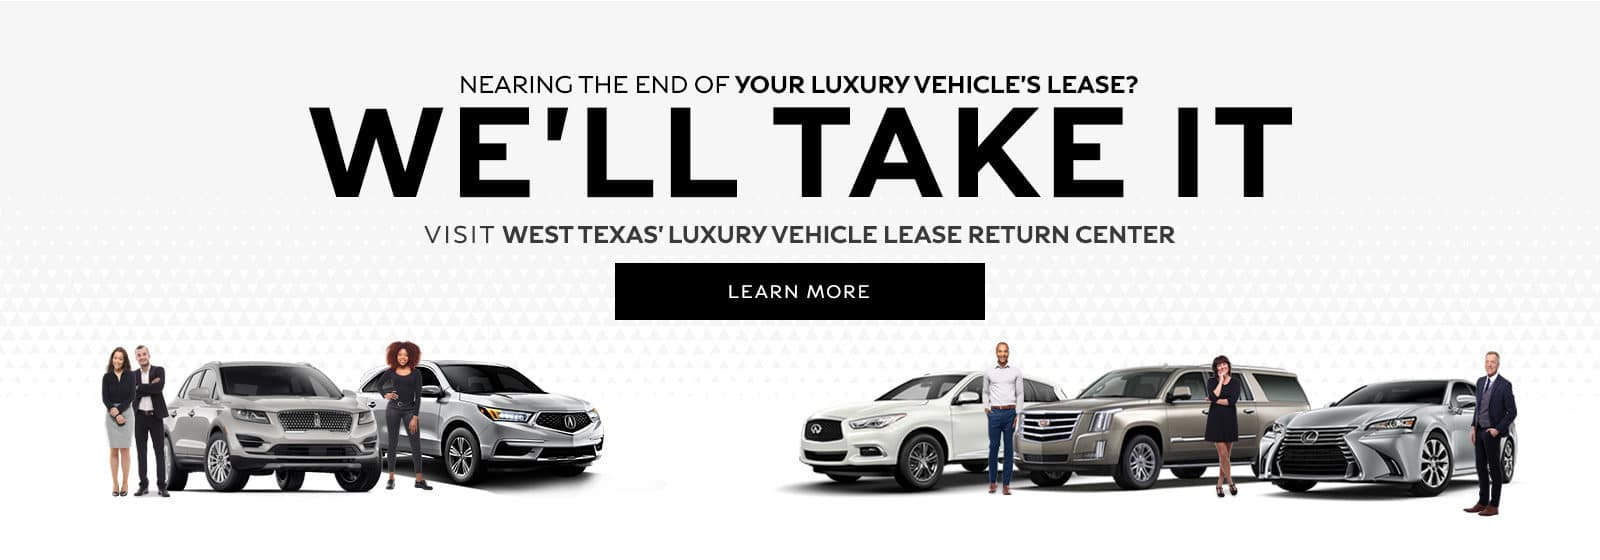 Nearing the end of your luxury vehicle's lease - We'll take it - Visit West Texas/ luxury lease return center